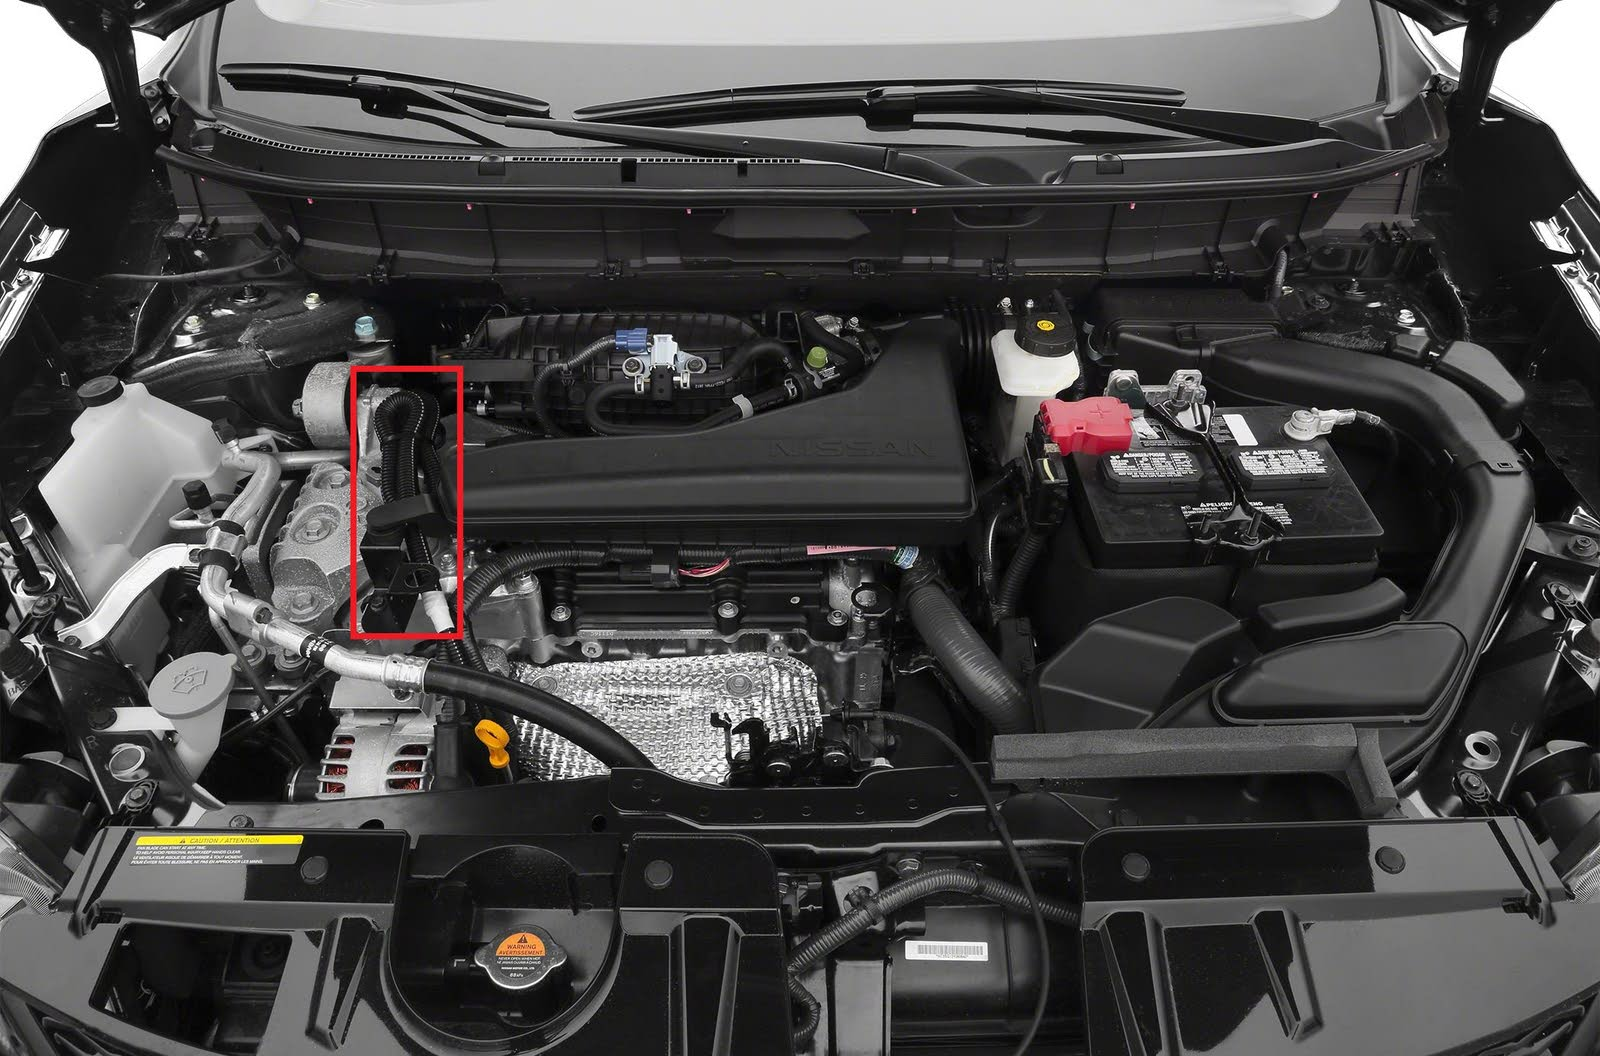 Nissan Rogue Questions - Wiring in Engine Room - CarGurus